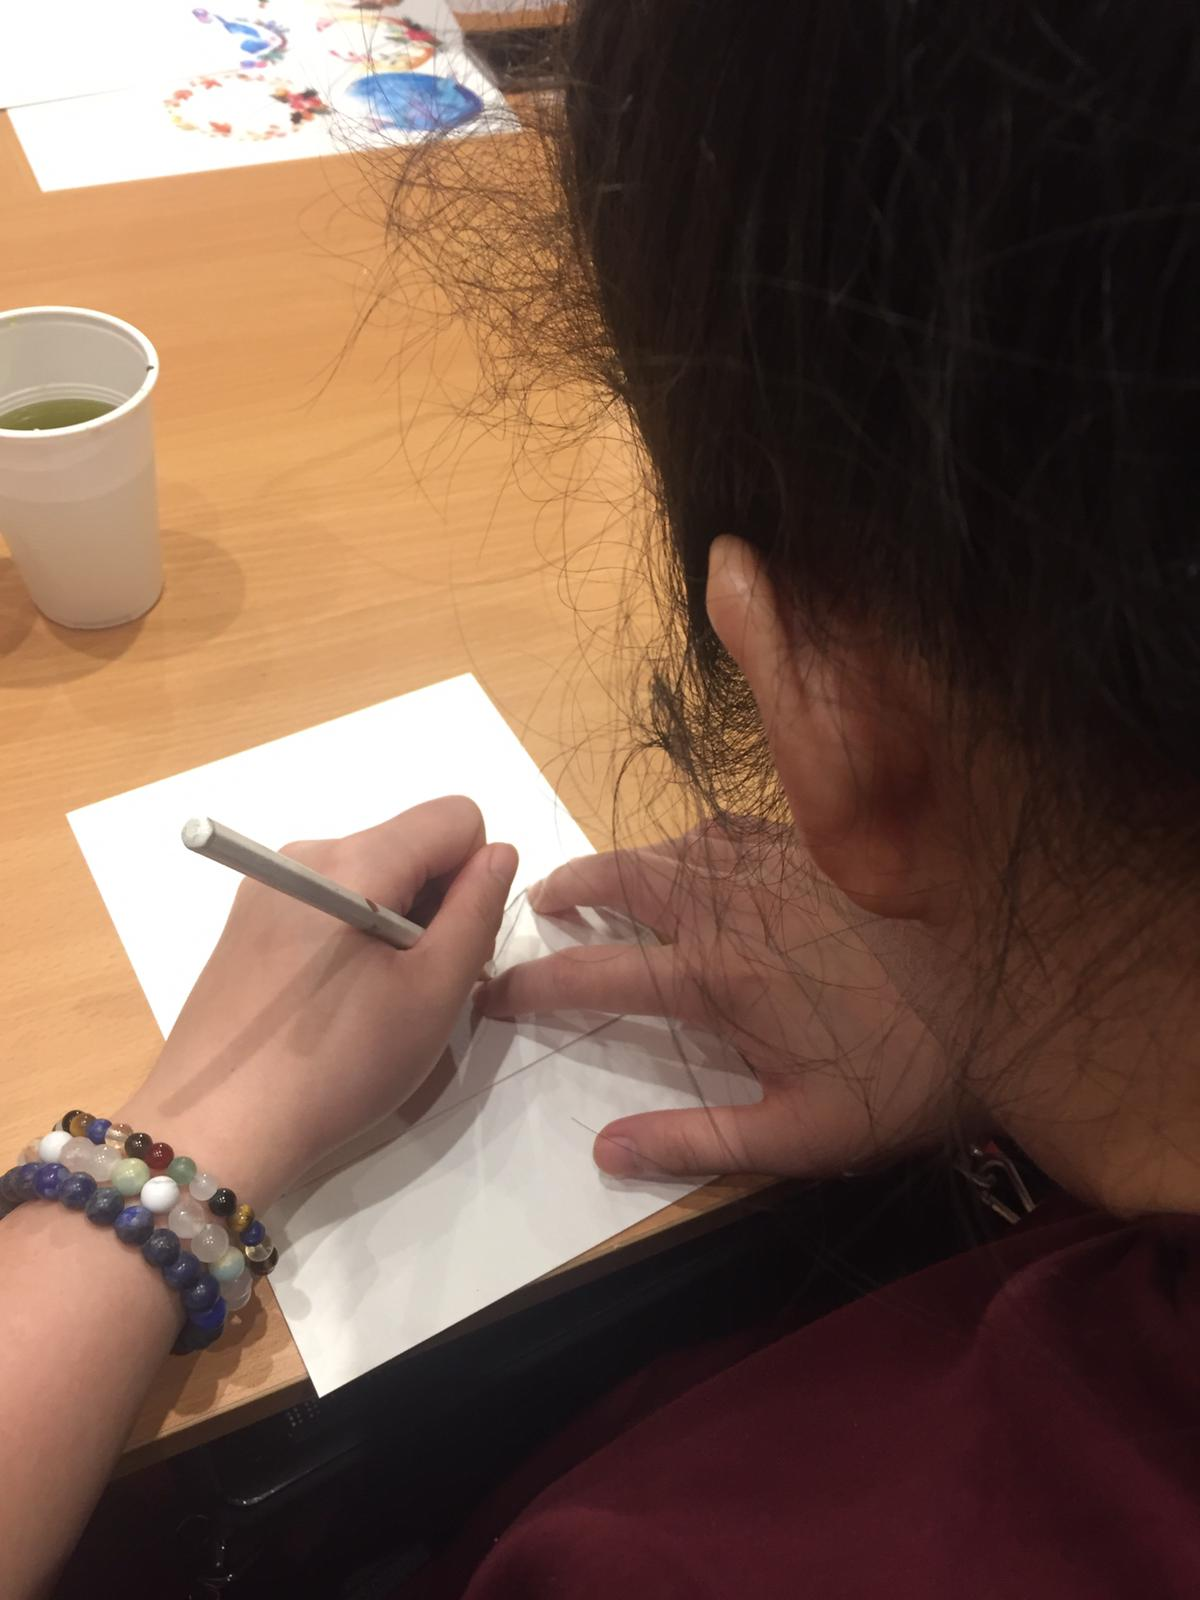 Siew Ling tracing the shape of a bird on a card.